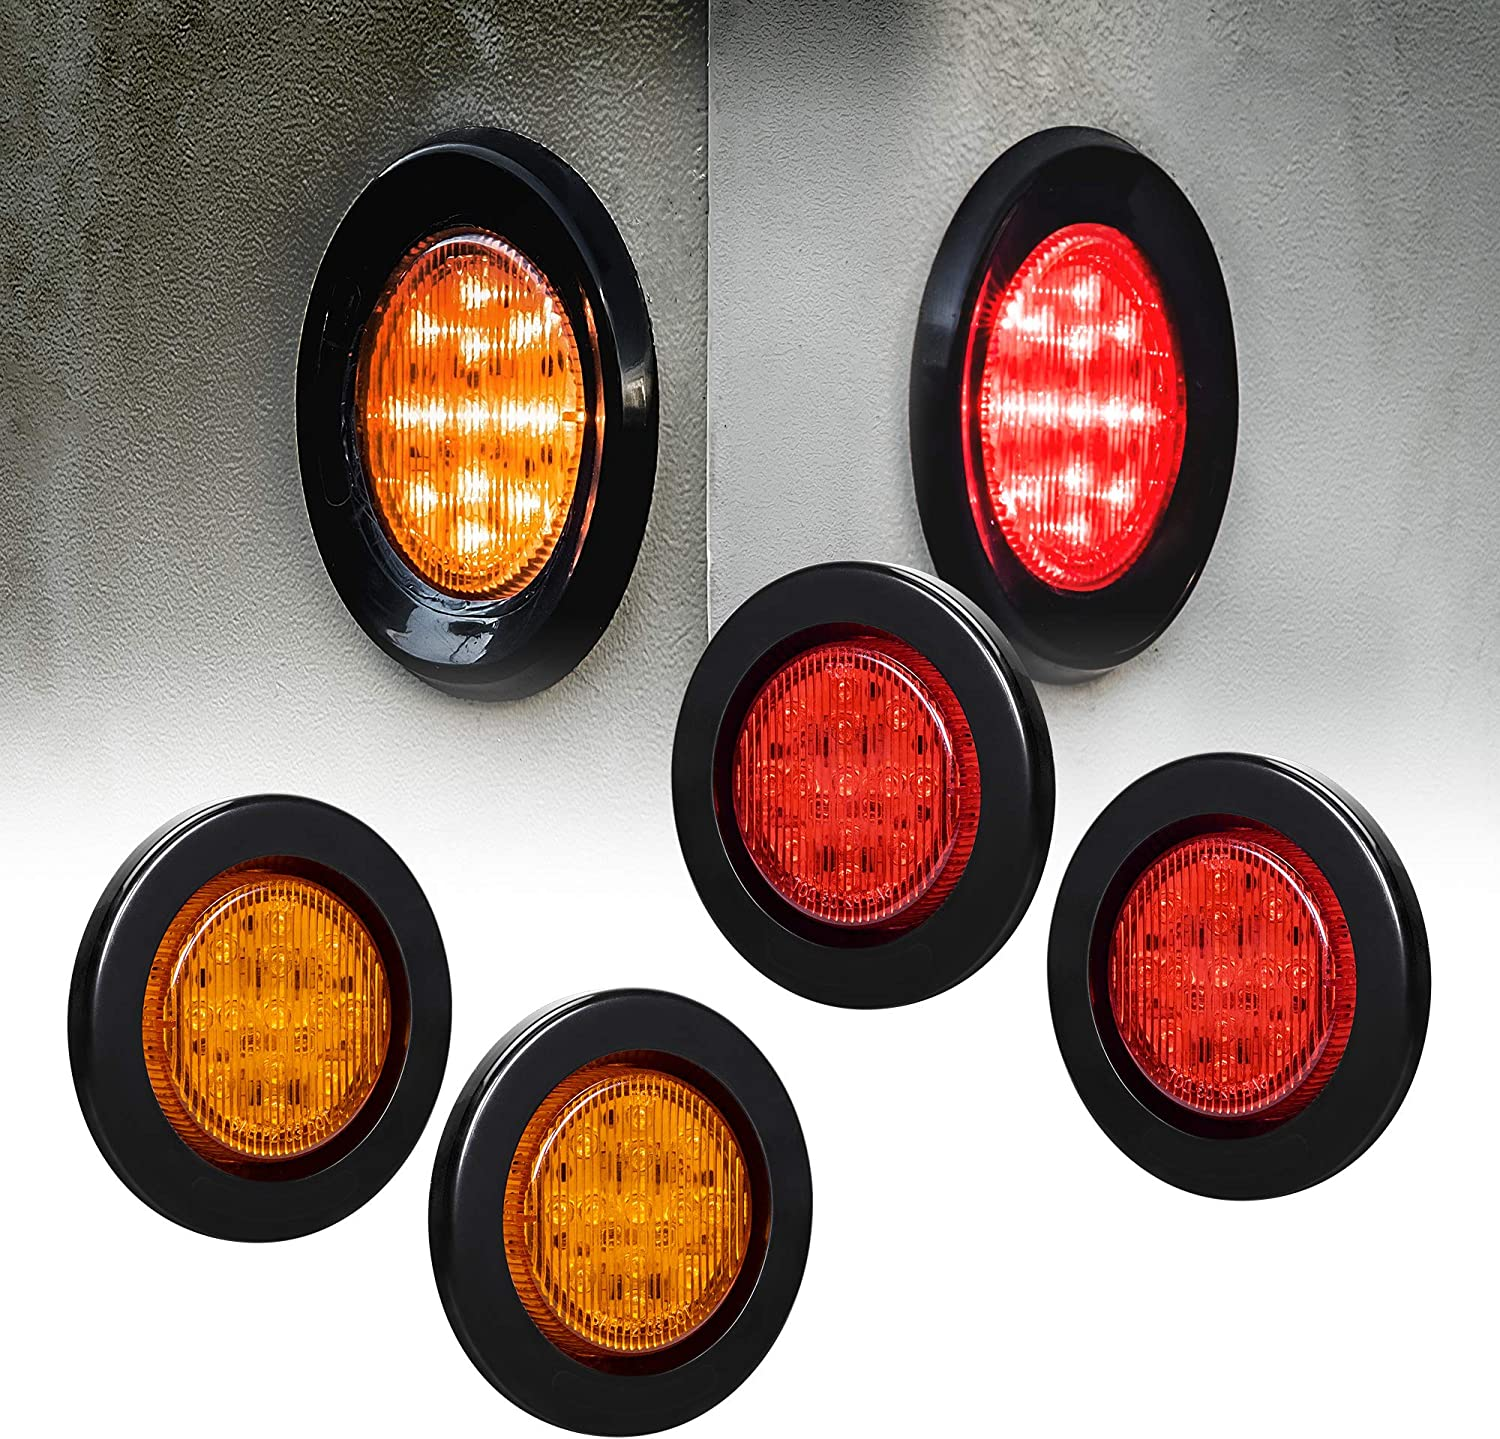 Grommet Red 2.5 Round 13 LED Truck Trailer Side Marker Clearance Light Kit